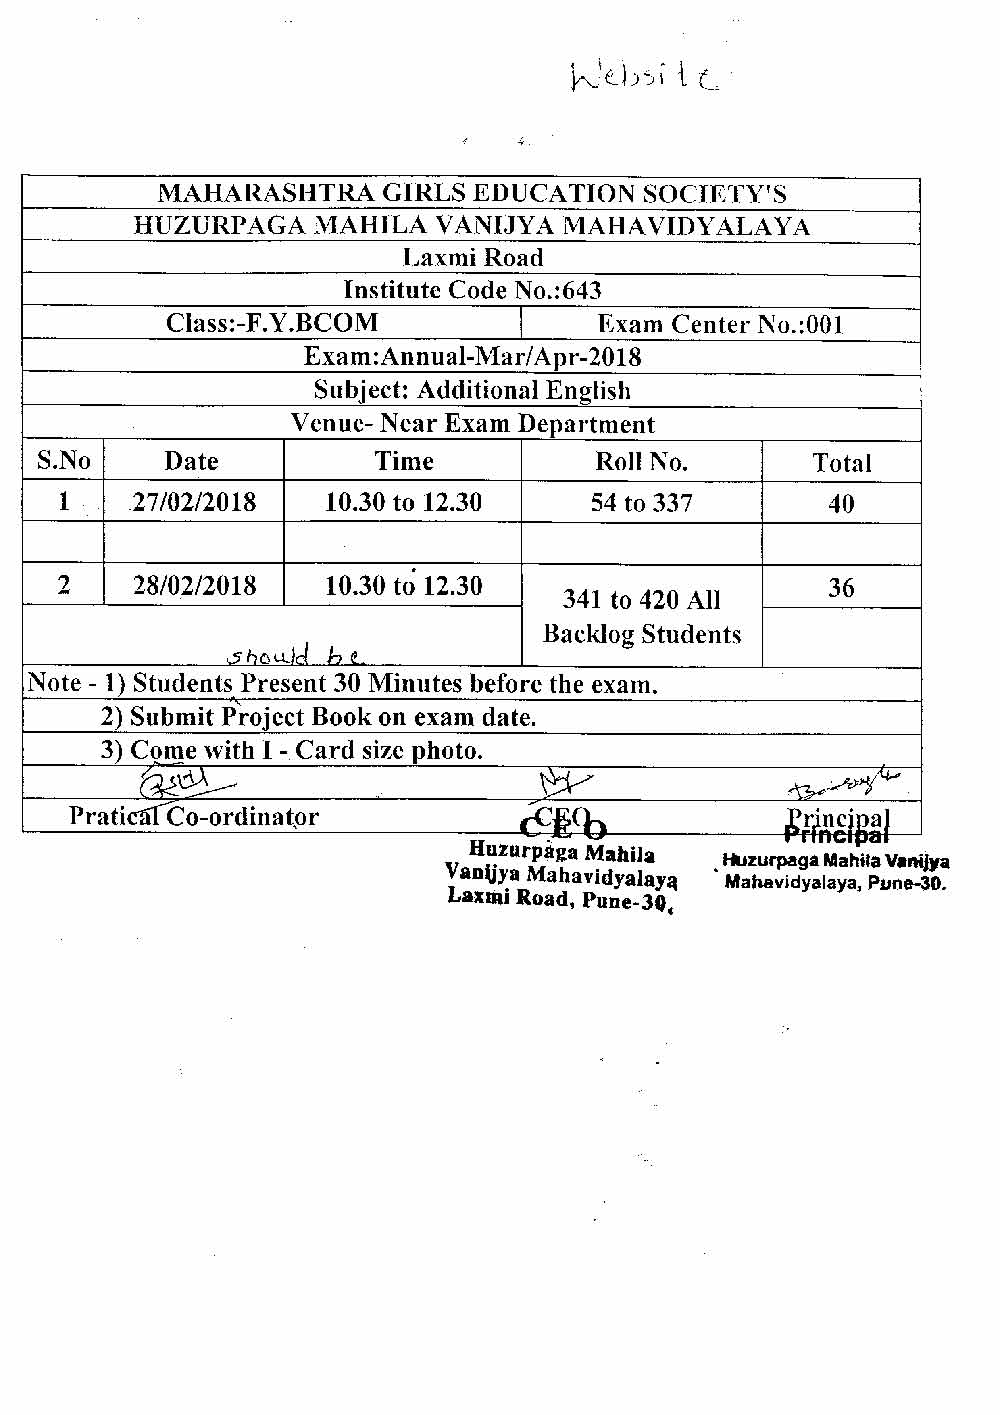 Additional English Practical Schedule